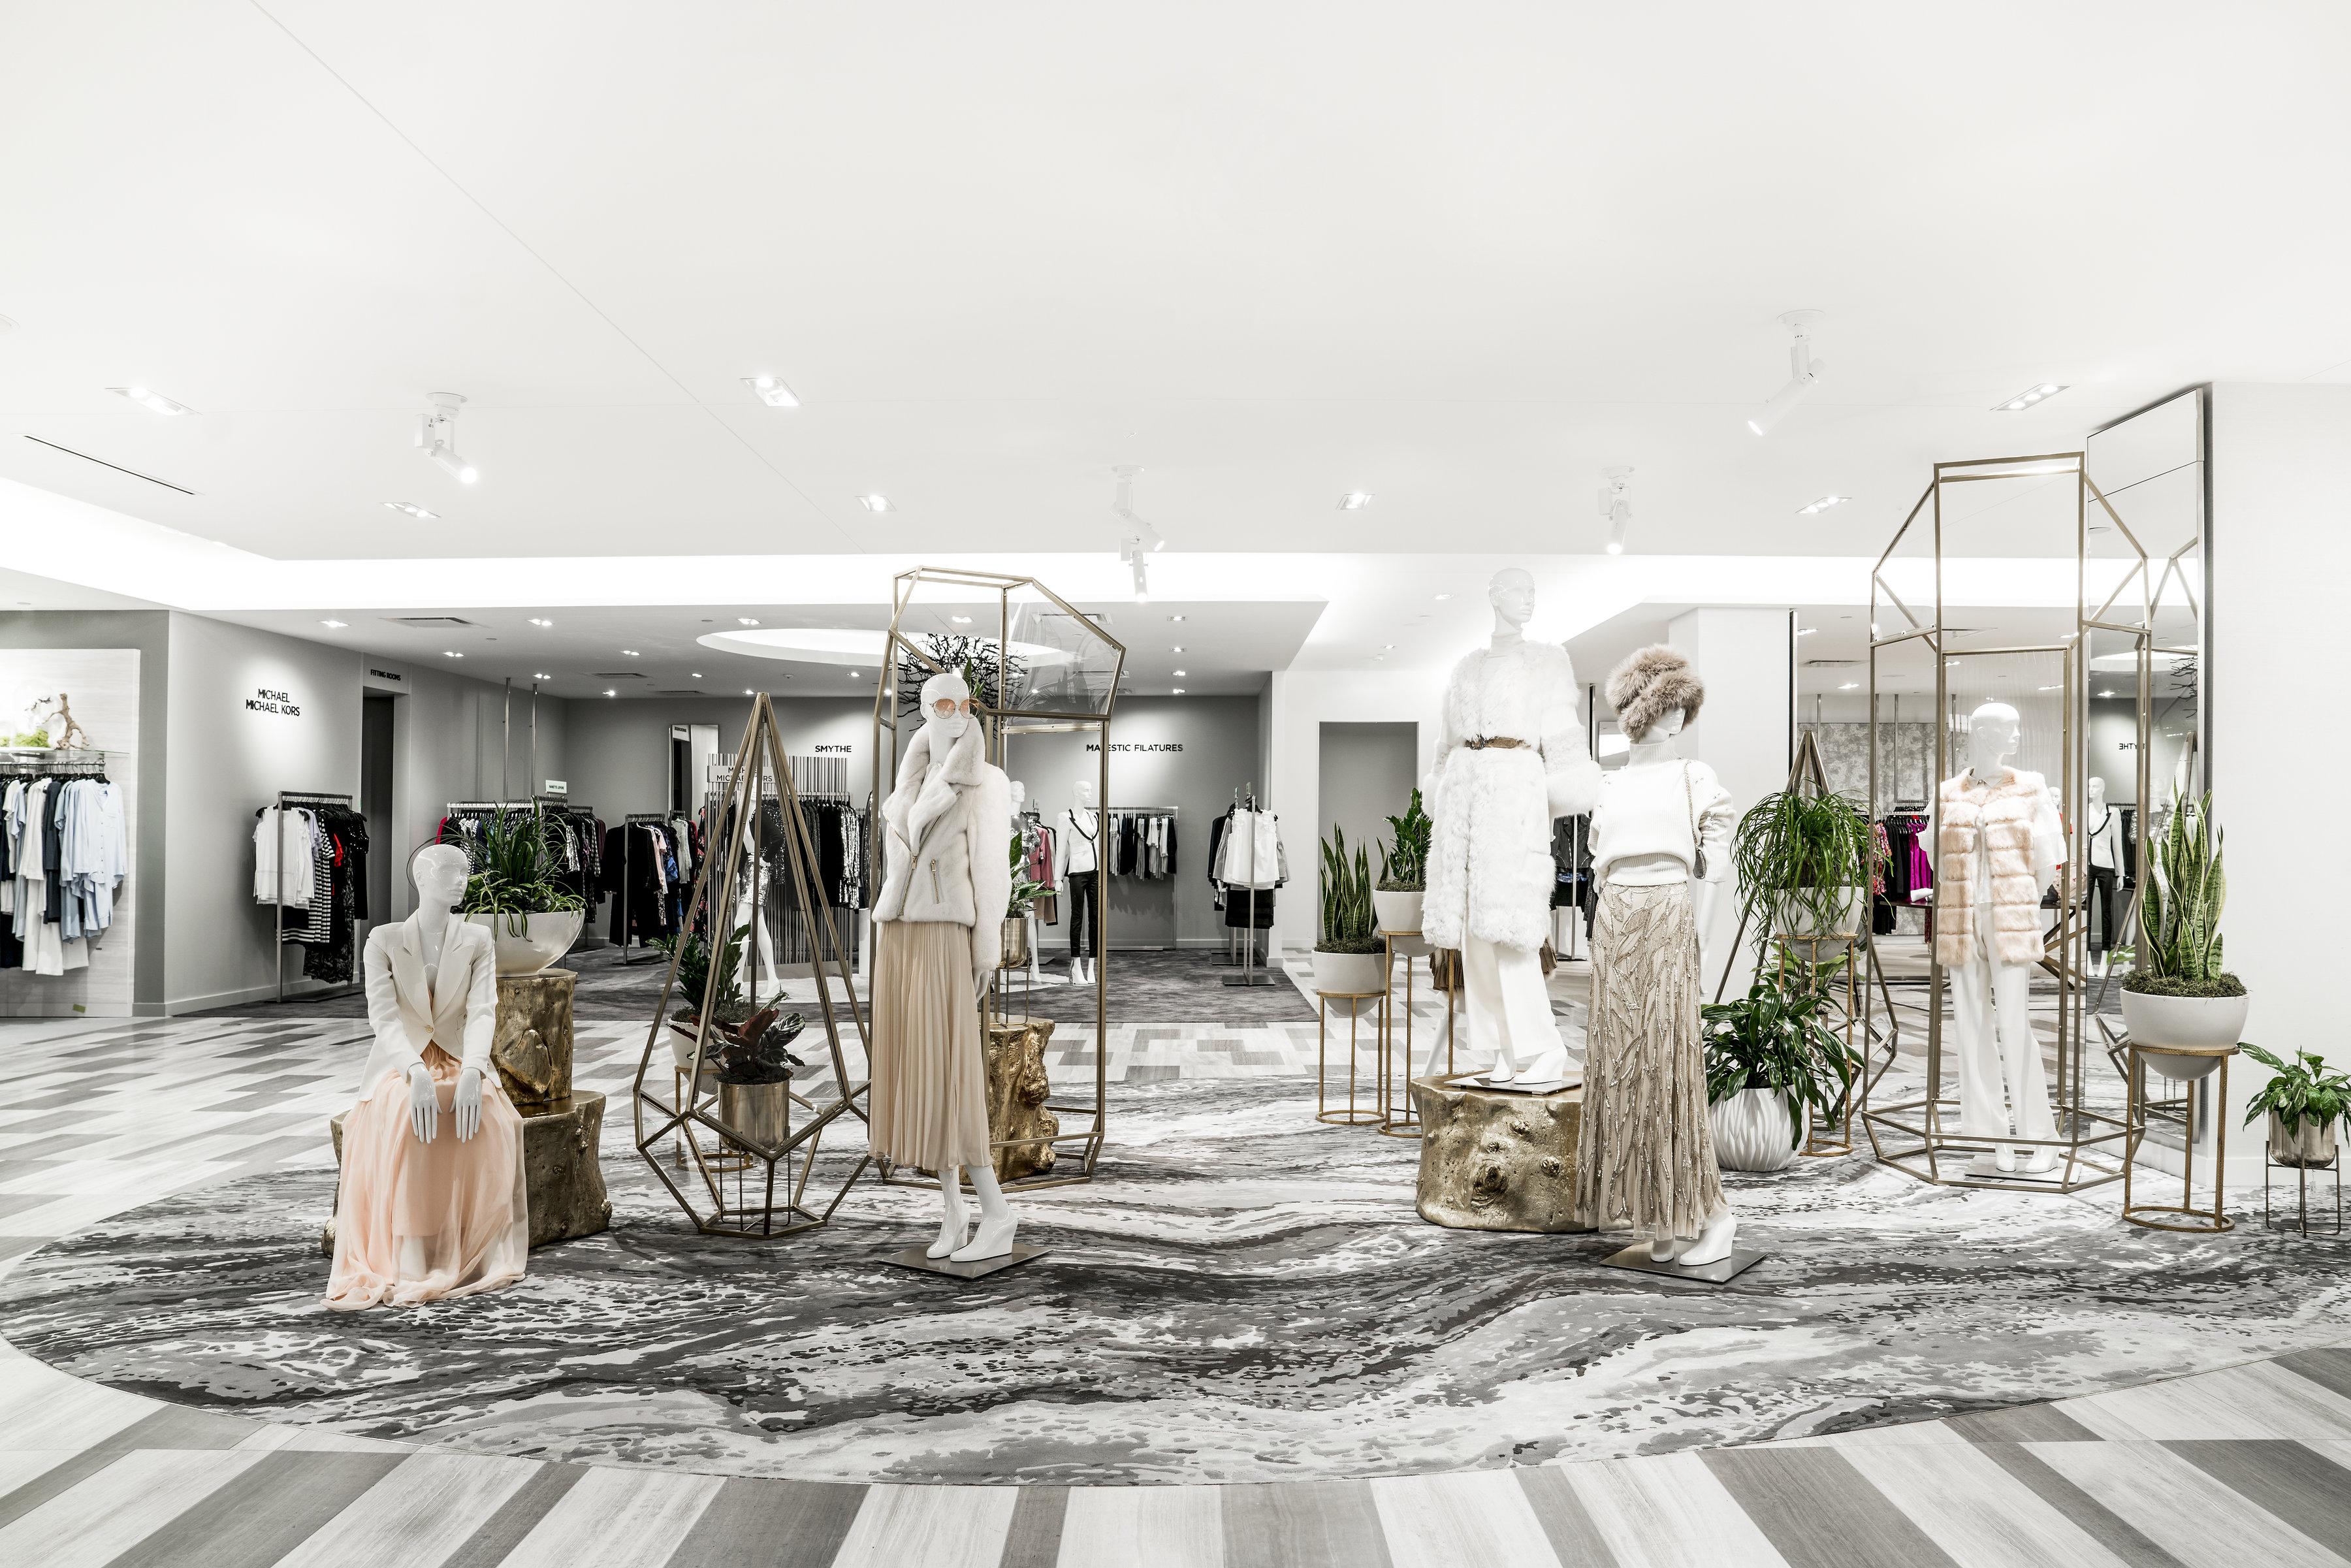 Saks Fifth Avenue Calgary: Luxury For Everyone - Styled to ...